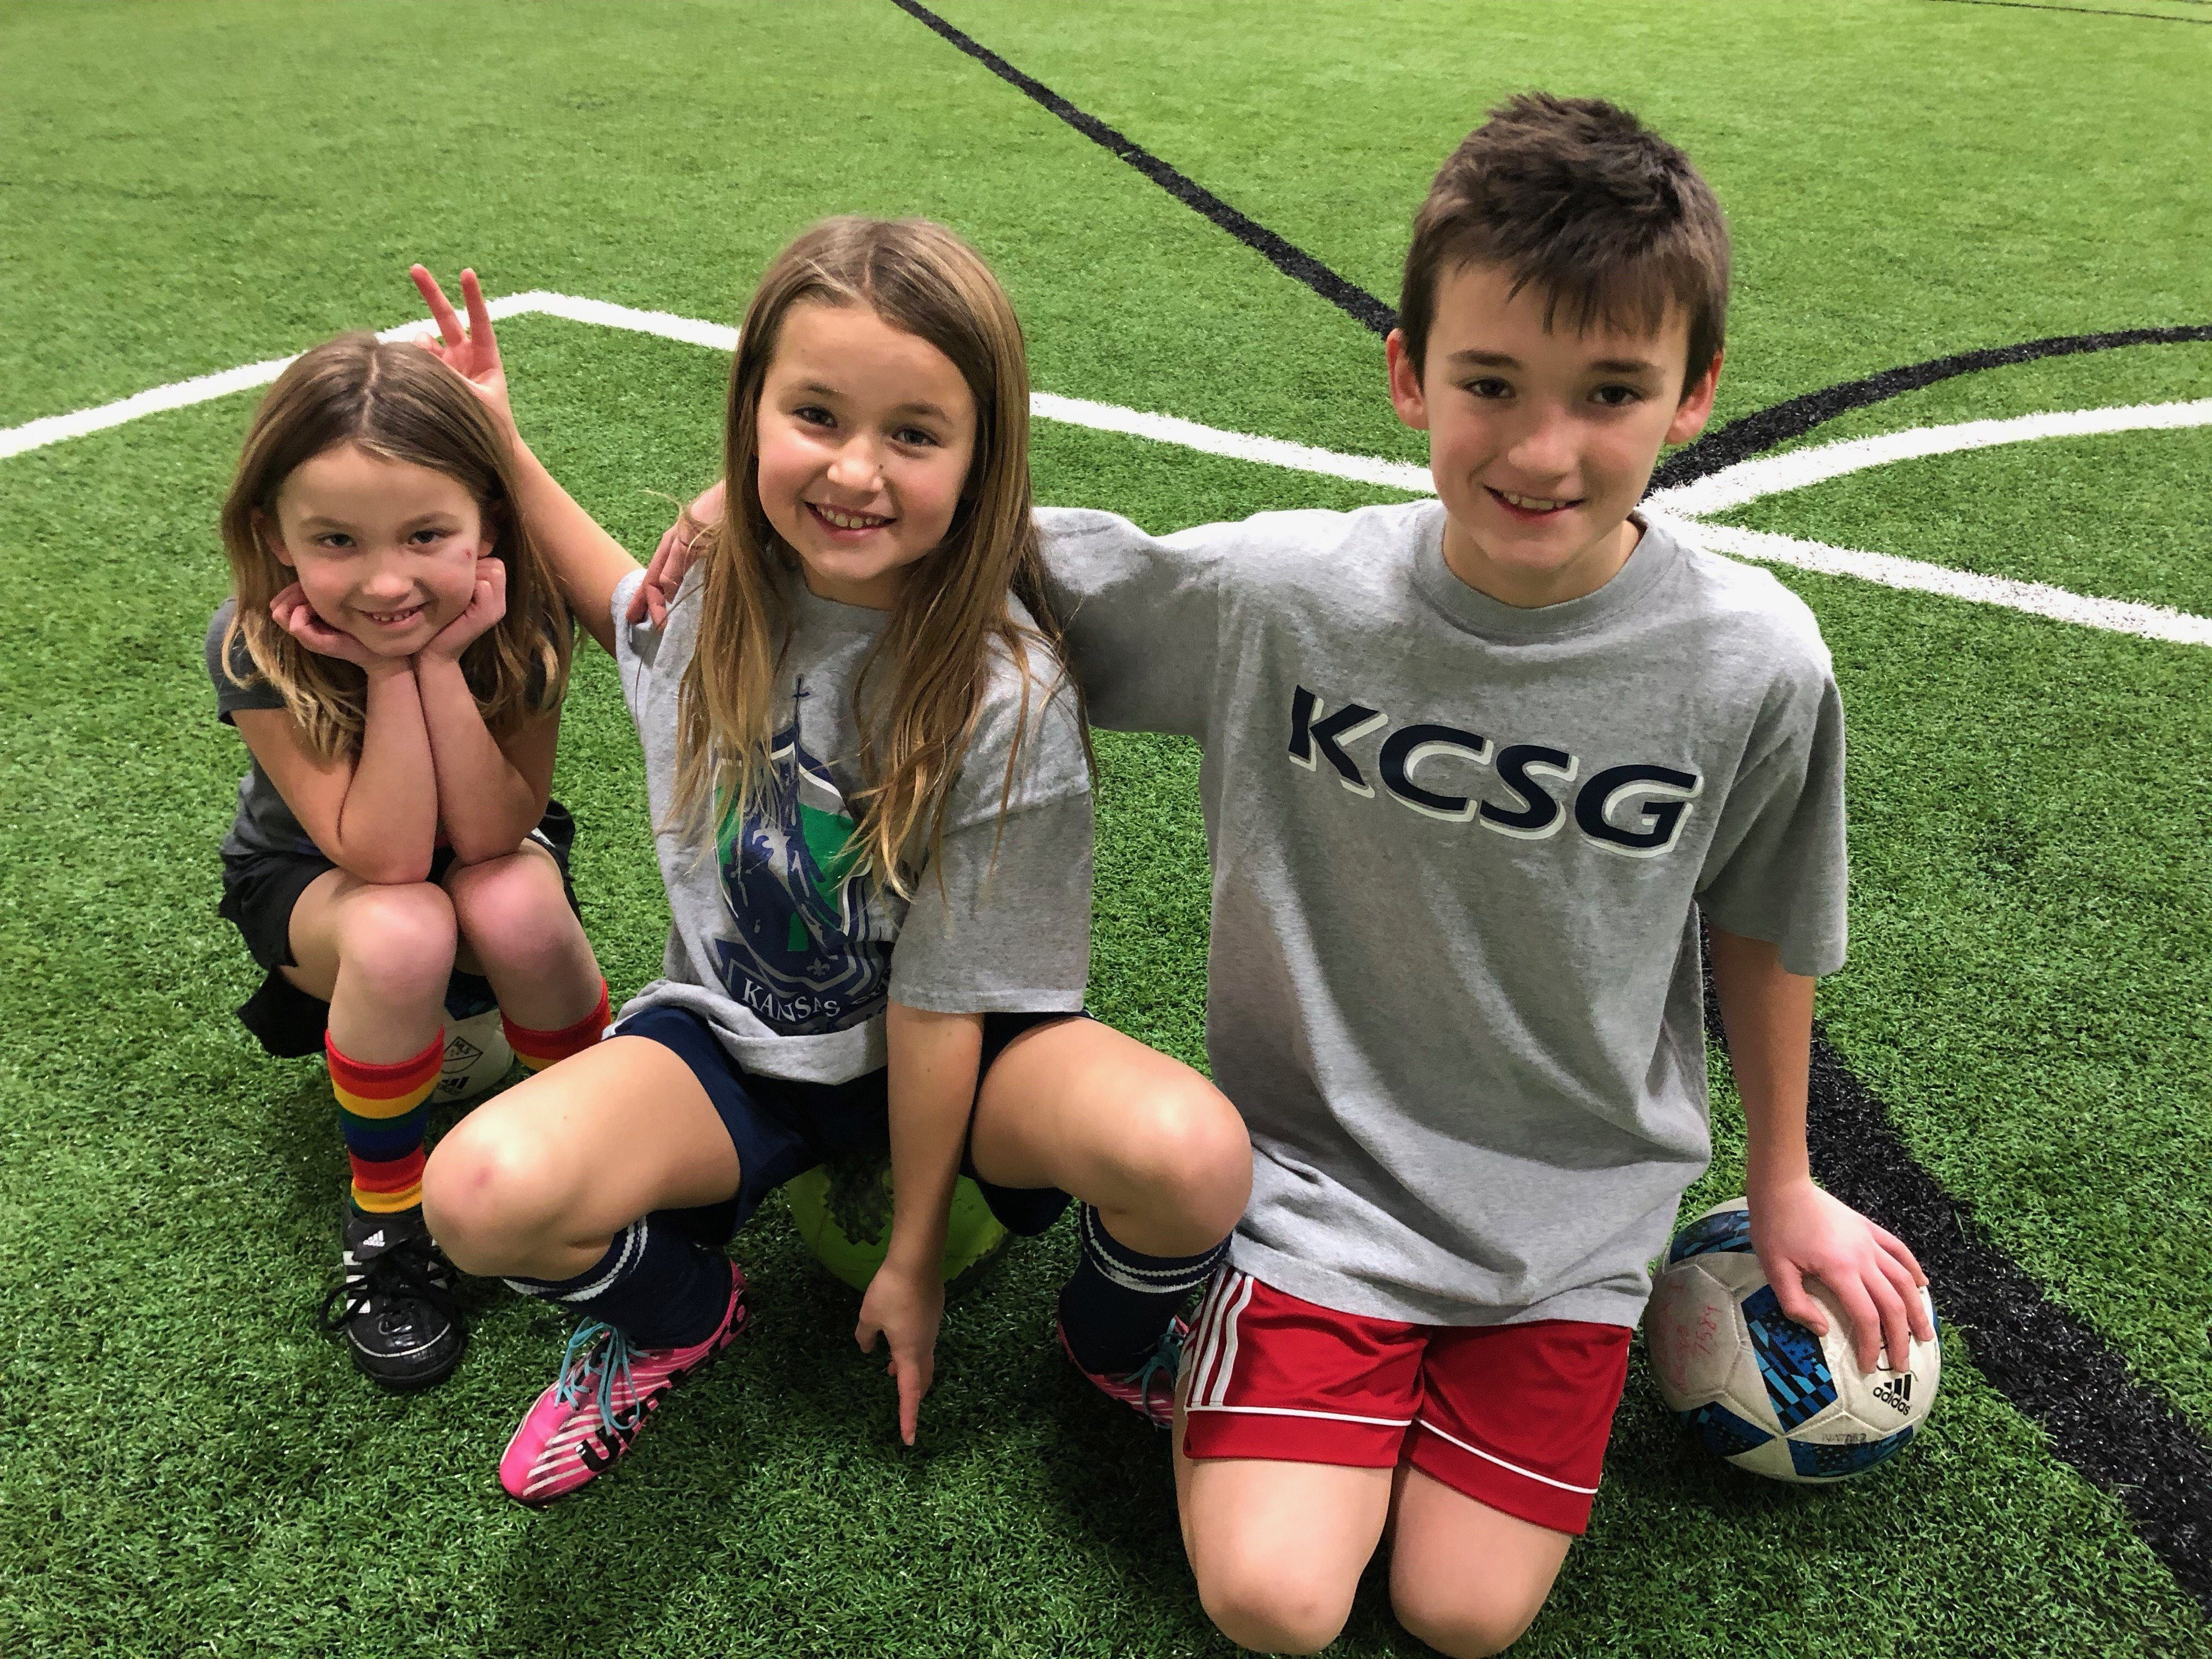 Parents Guide To Youth Competitive Soccer Clubs Soccer Tryouts Soccer Stripes Soccer Club Soccer Soccer Season